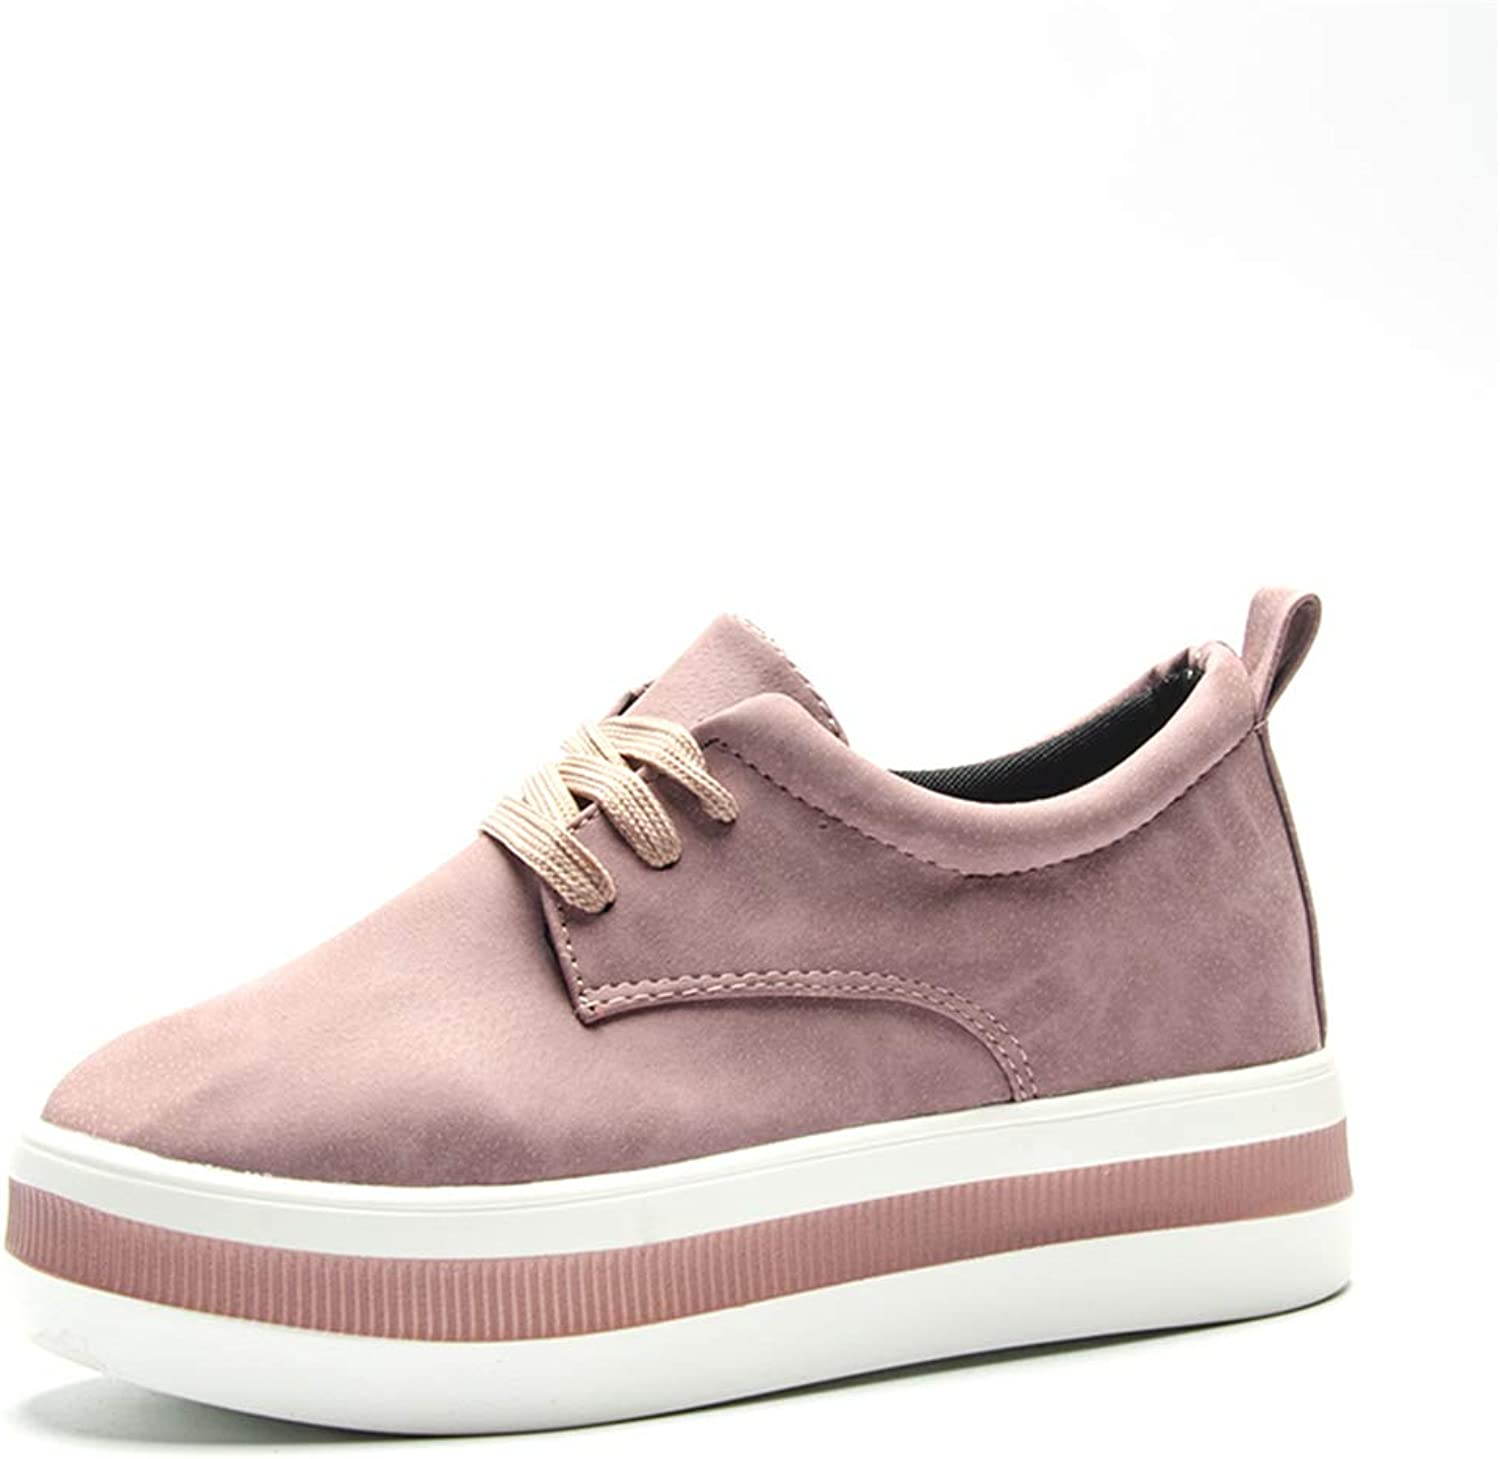 Sam Look Women Flats Sneakers shoes Fashion Creepers shoes Lady Loafers Ladies 5CM Platform